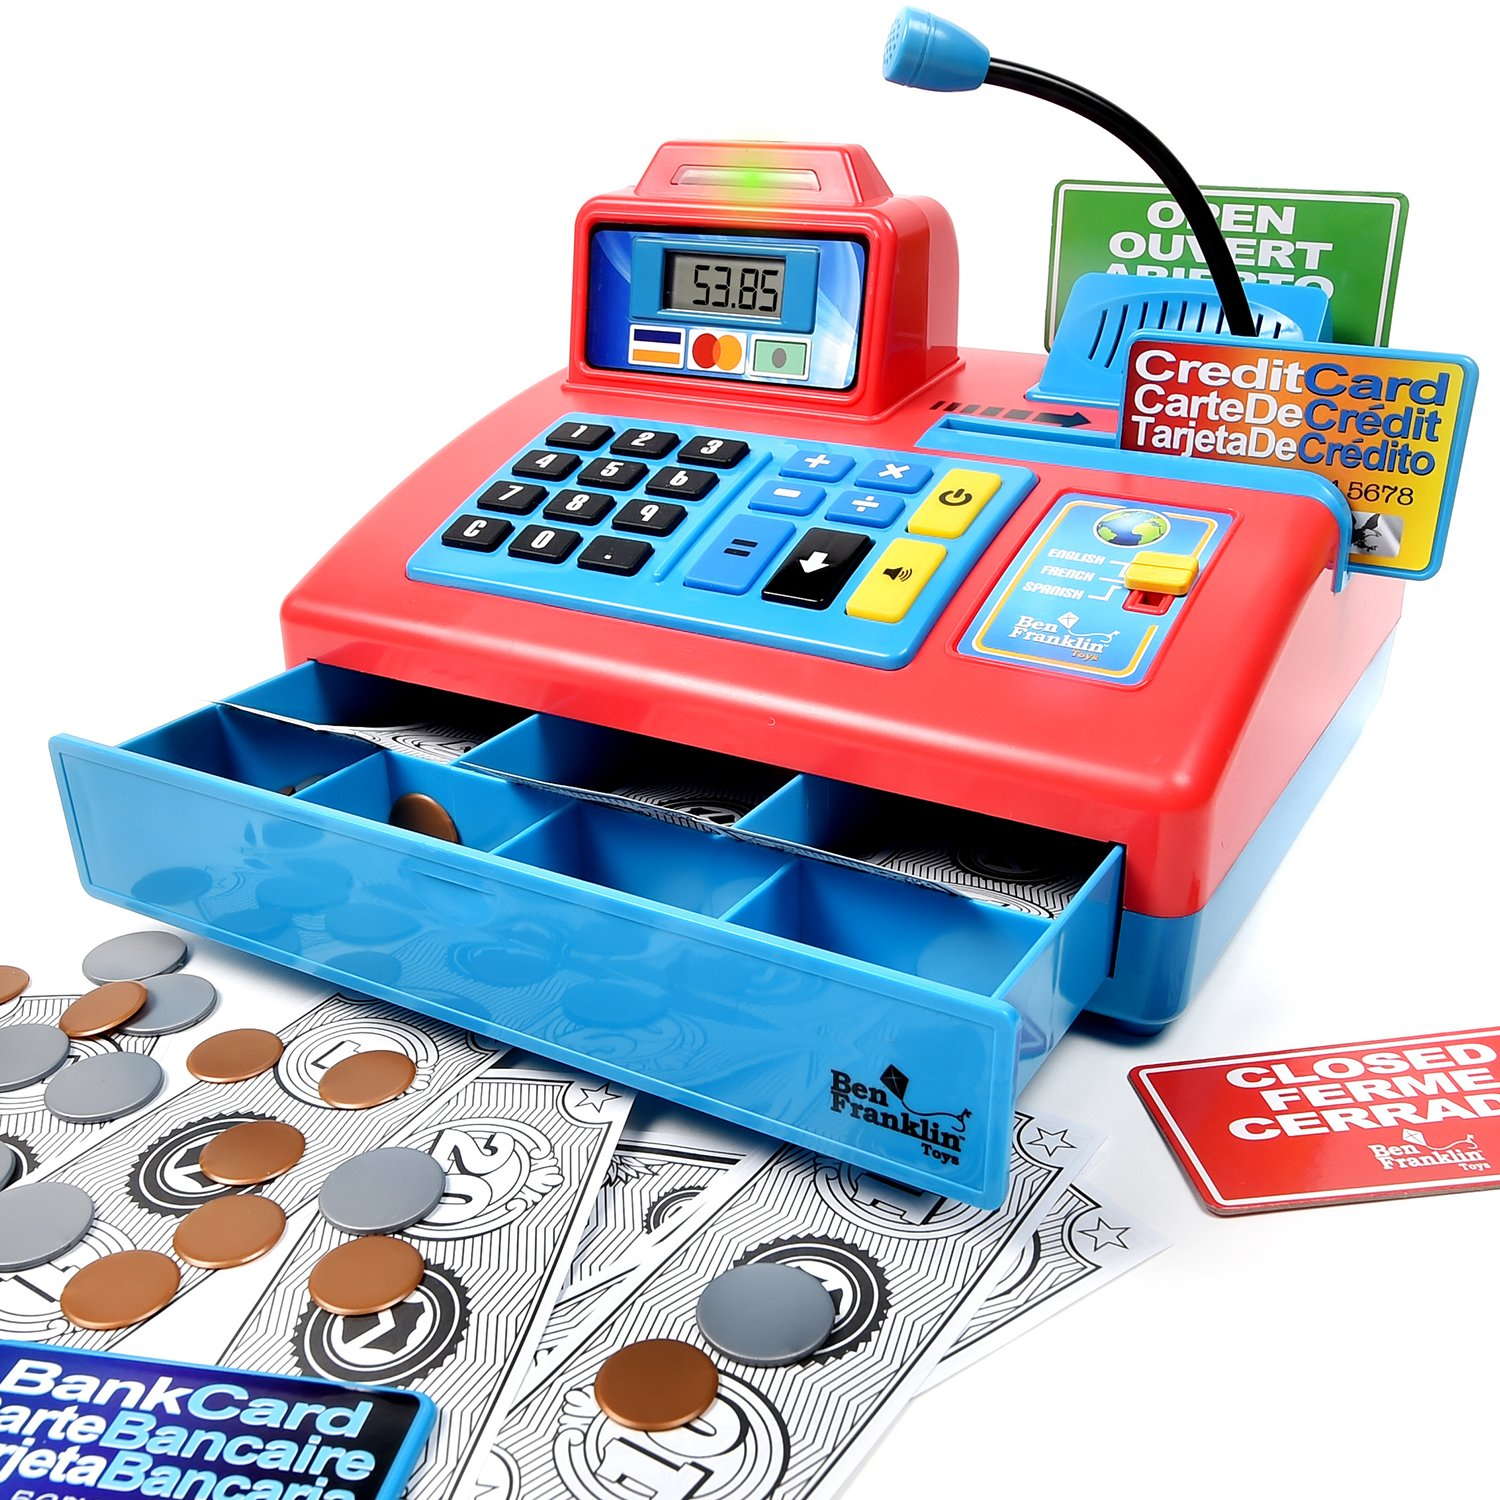 credit card bank card and play money store learning play set with 3 languages Ben Franklin Toys Talking Toy Cash Register paging microphone